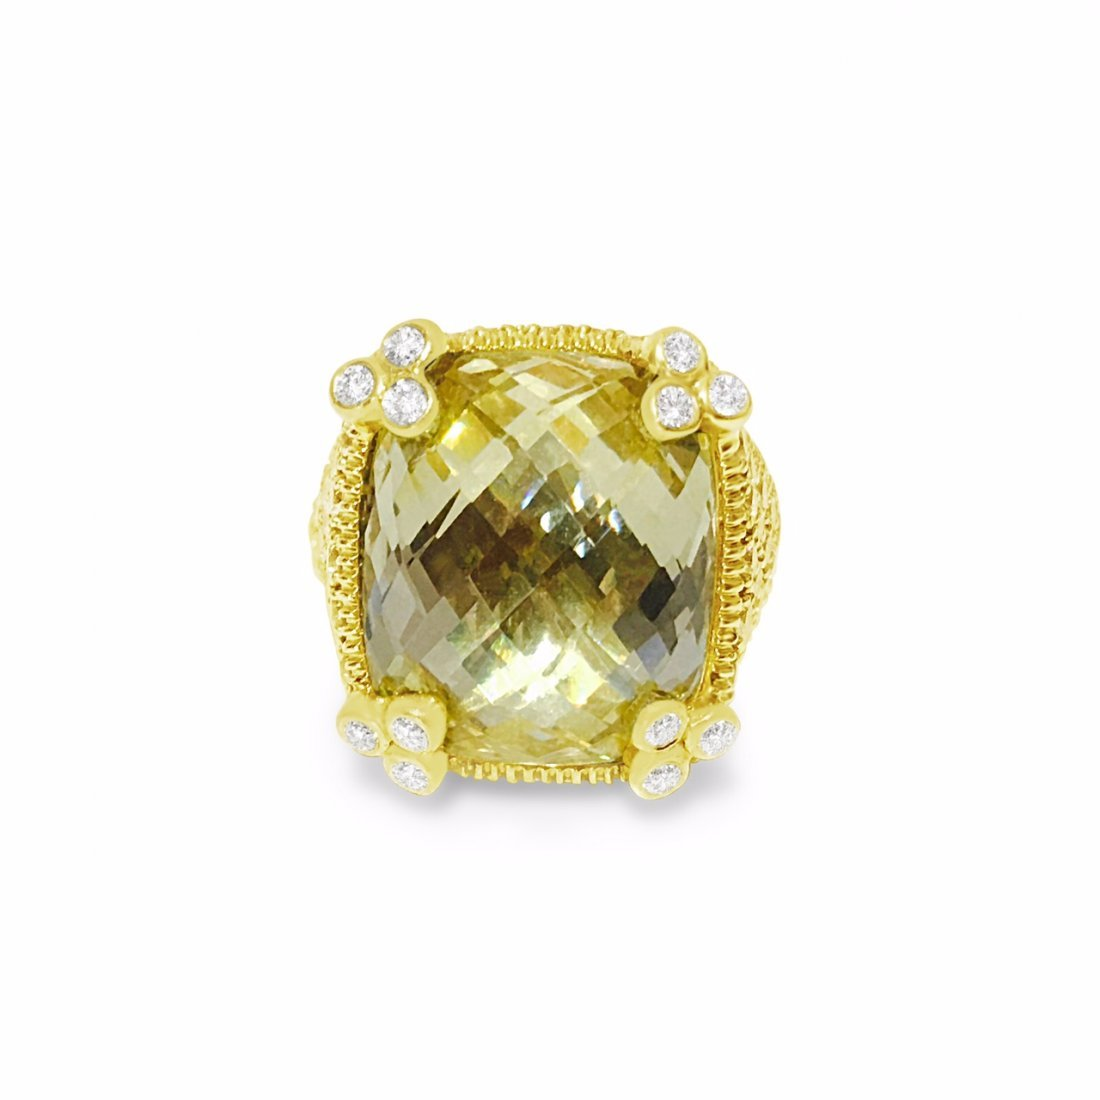 18K Gold, 25 CT Natural Yellow Stone and Diamond Ring - 3